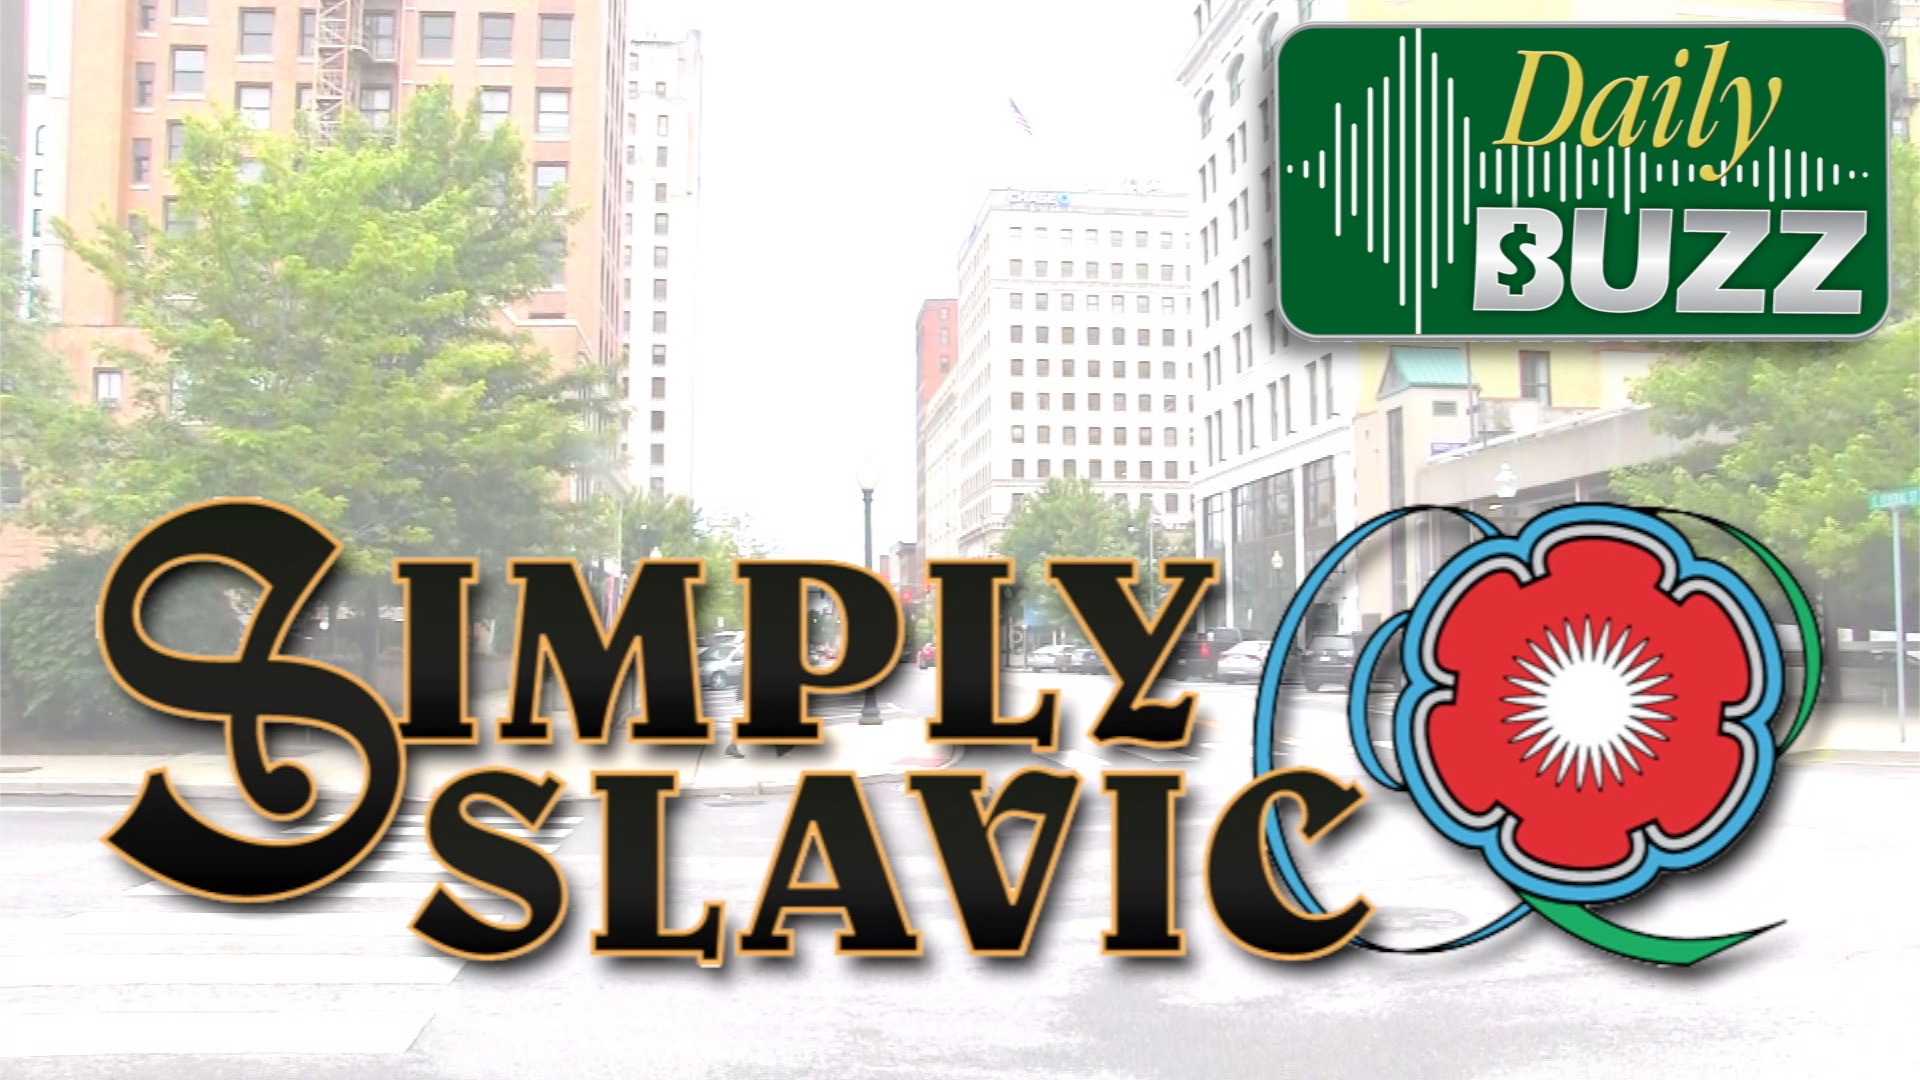 Downtown Gets Slavic